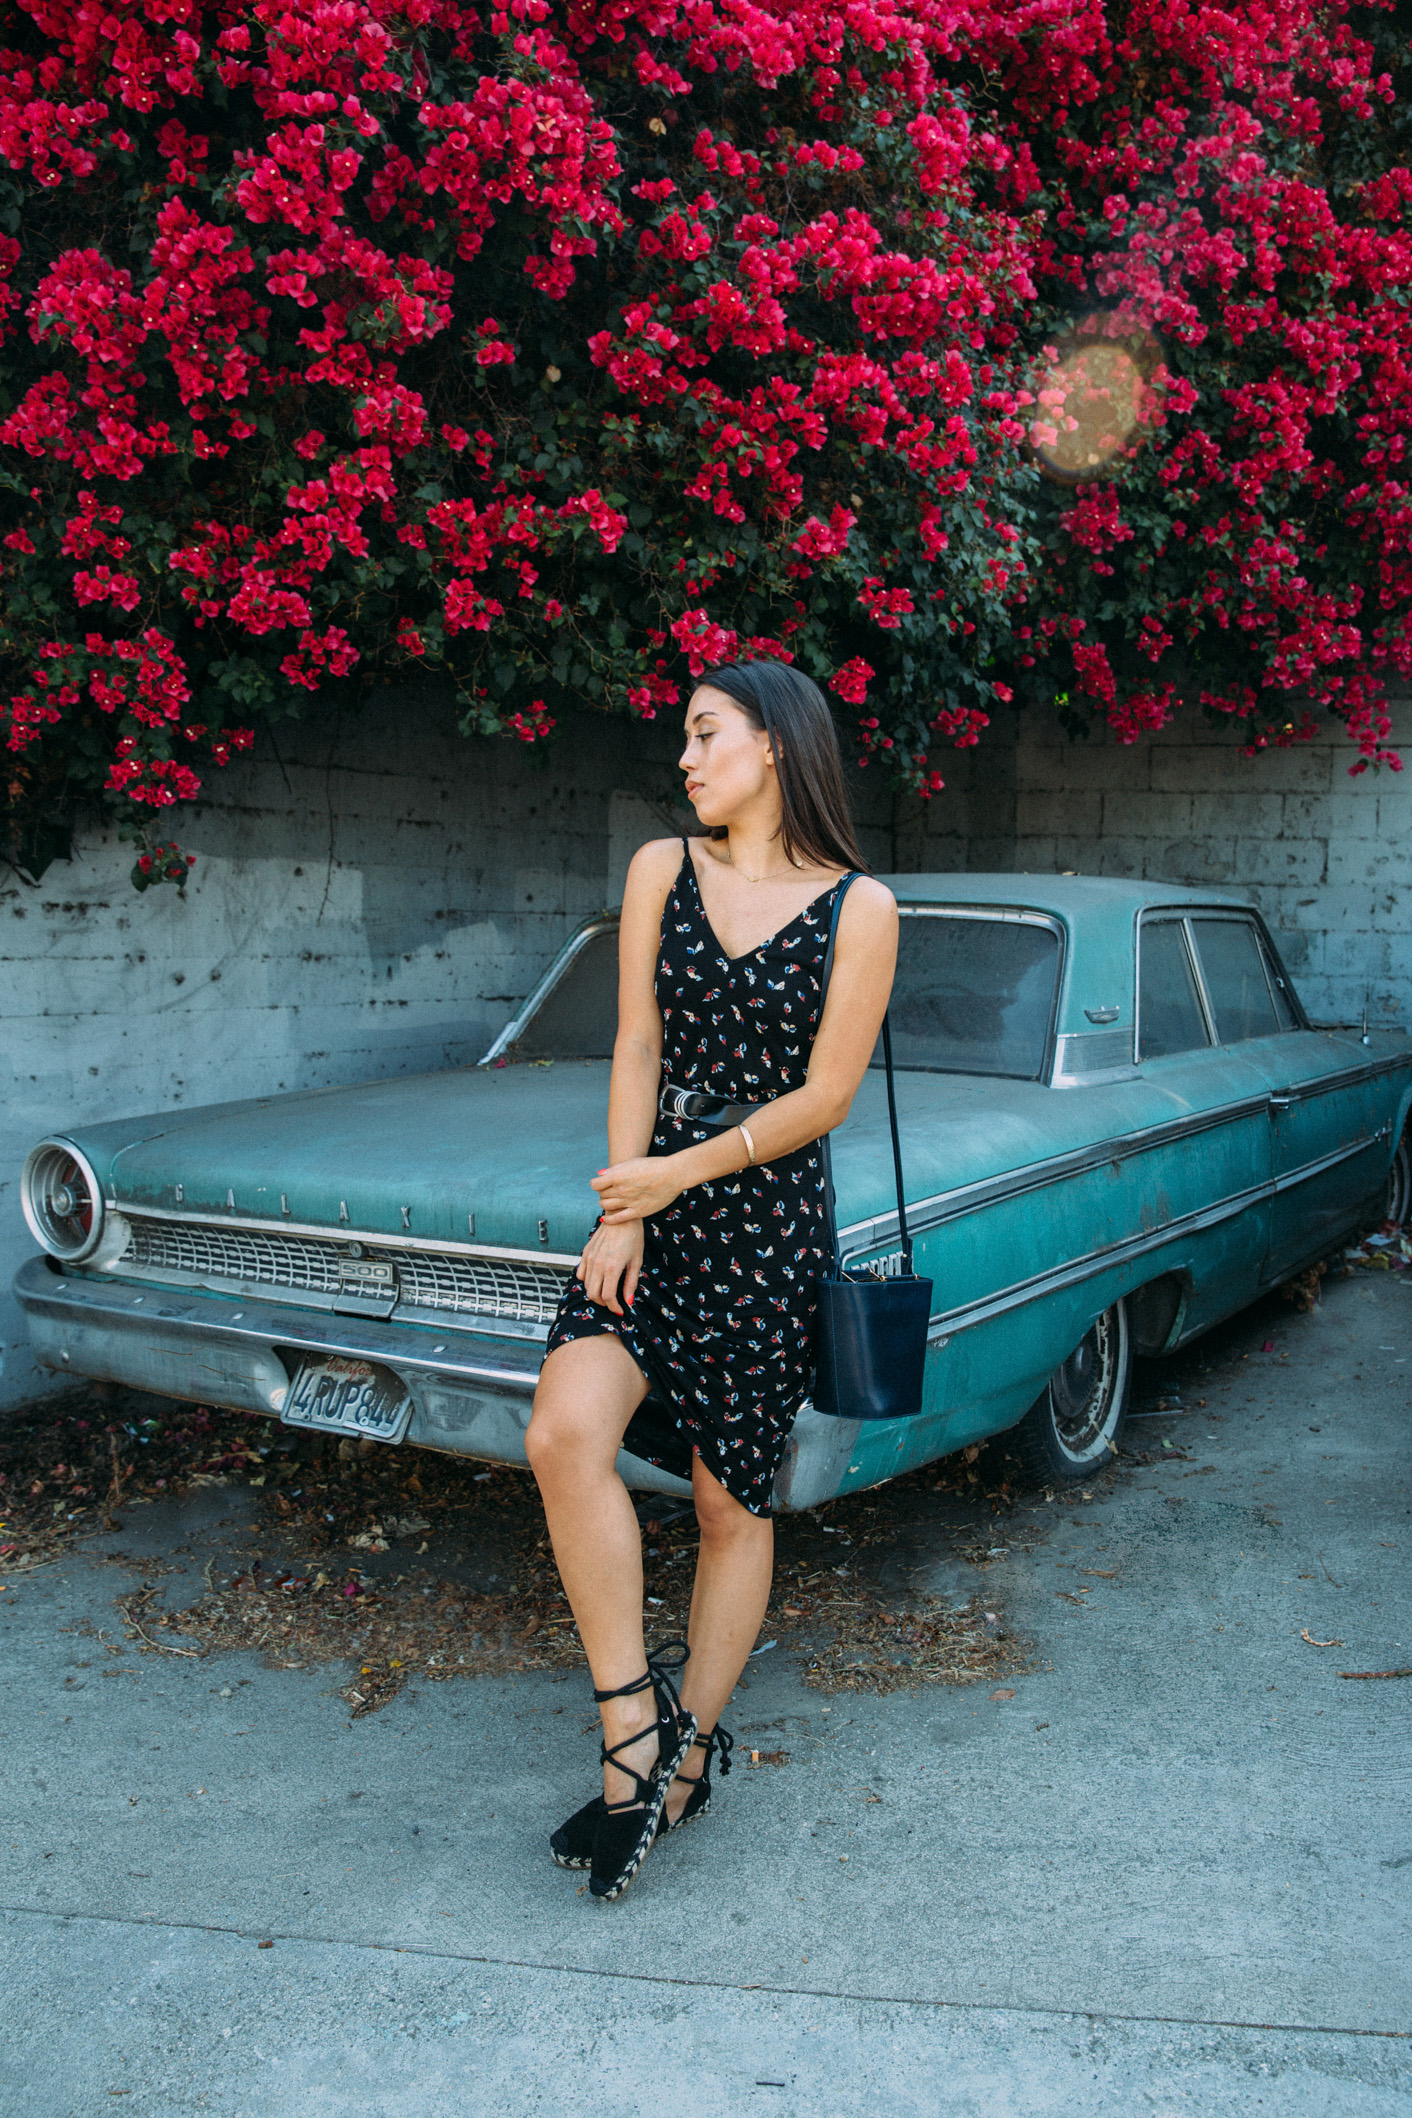 Emily Tong of LOVE OR MONEY blog wearing 90's style printed dress and espadrilles in LA